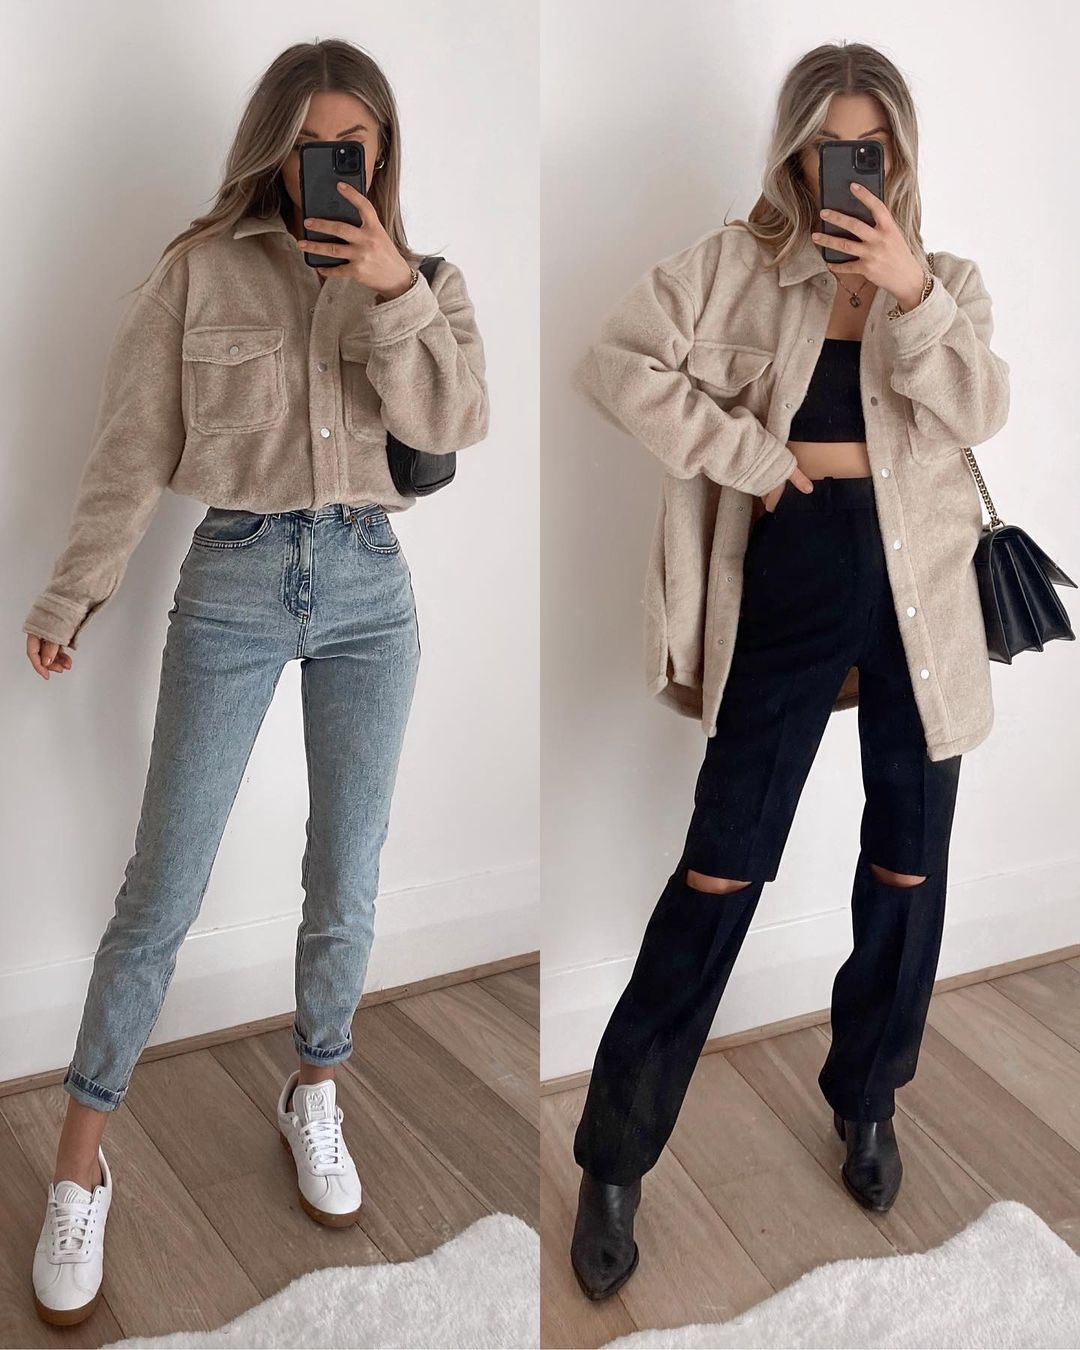 Casual Clothing Idea For Girls Style In 2021 Tiktok Aesthetic Spring In 2021 Fashion Dresss Clothes Outfits